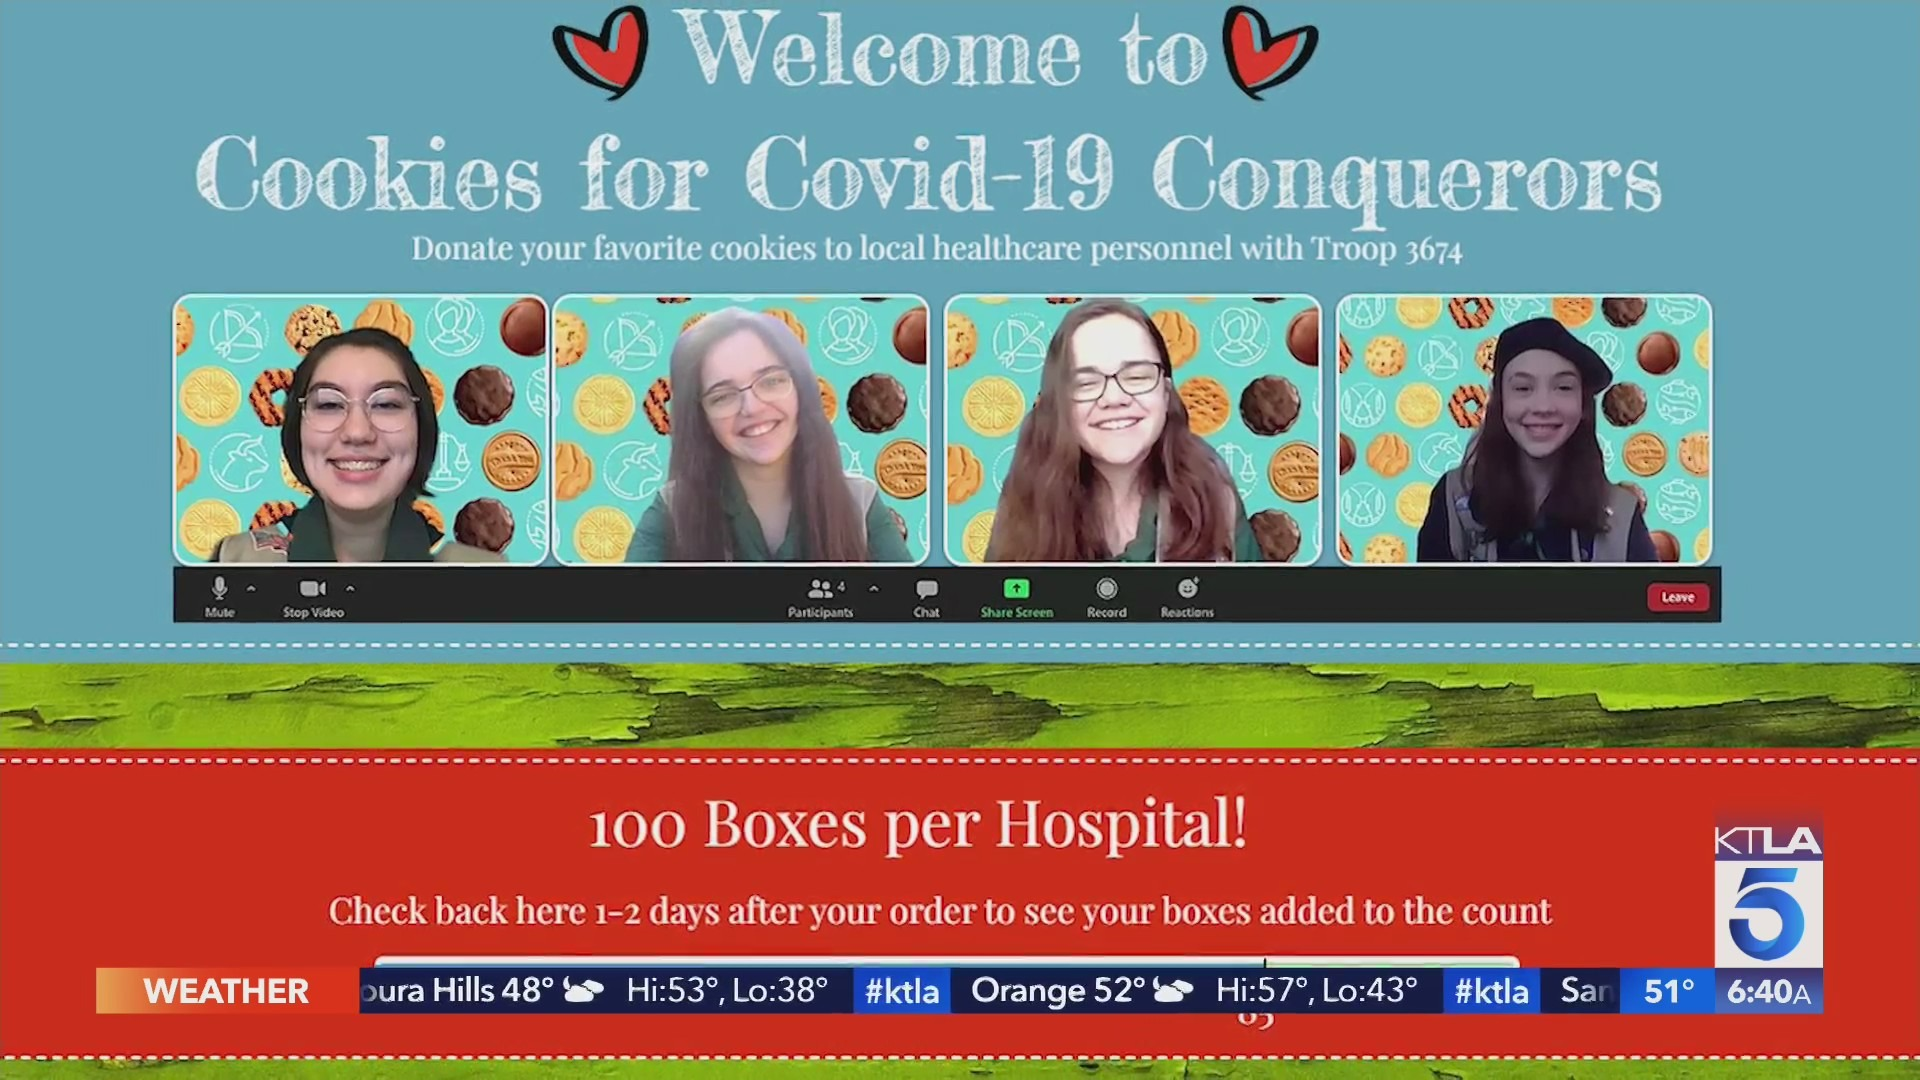 Cookies for COVID-19 Conquerors sends Girl Scout cookies to health care workers